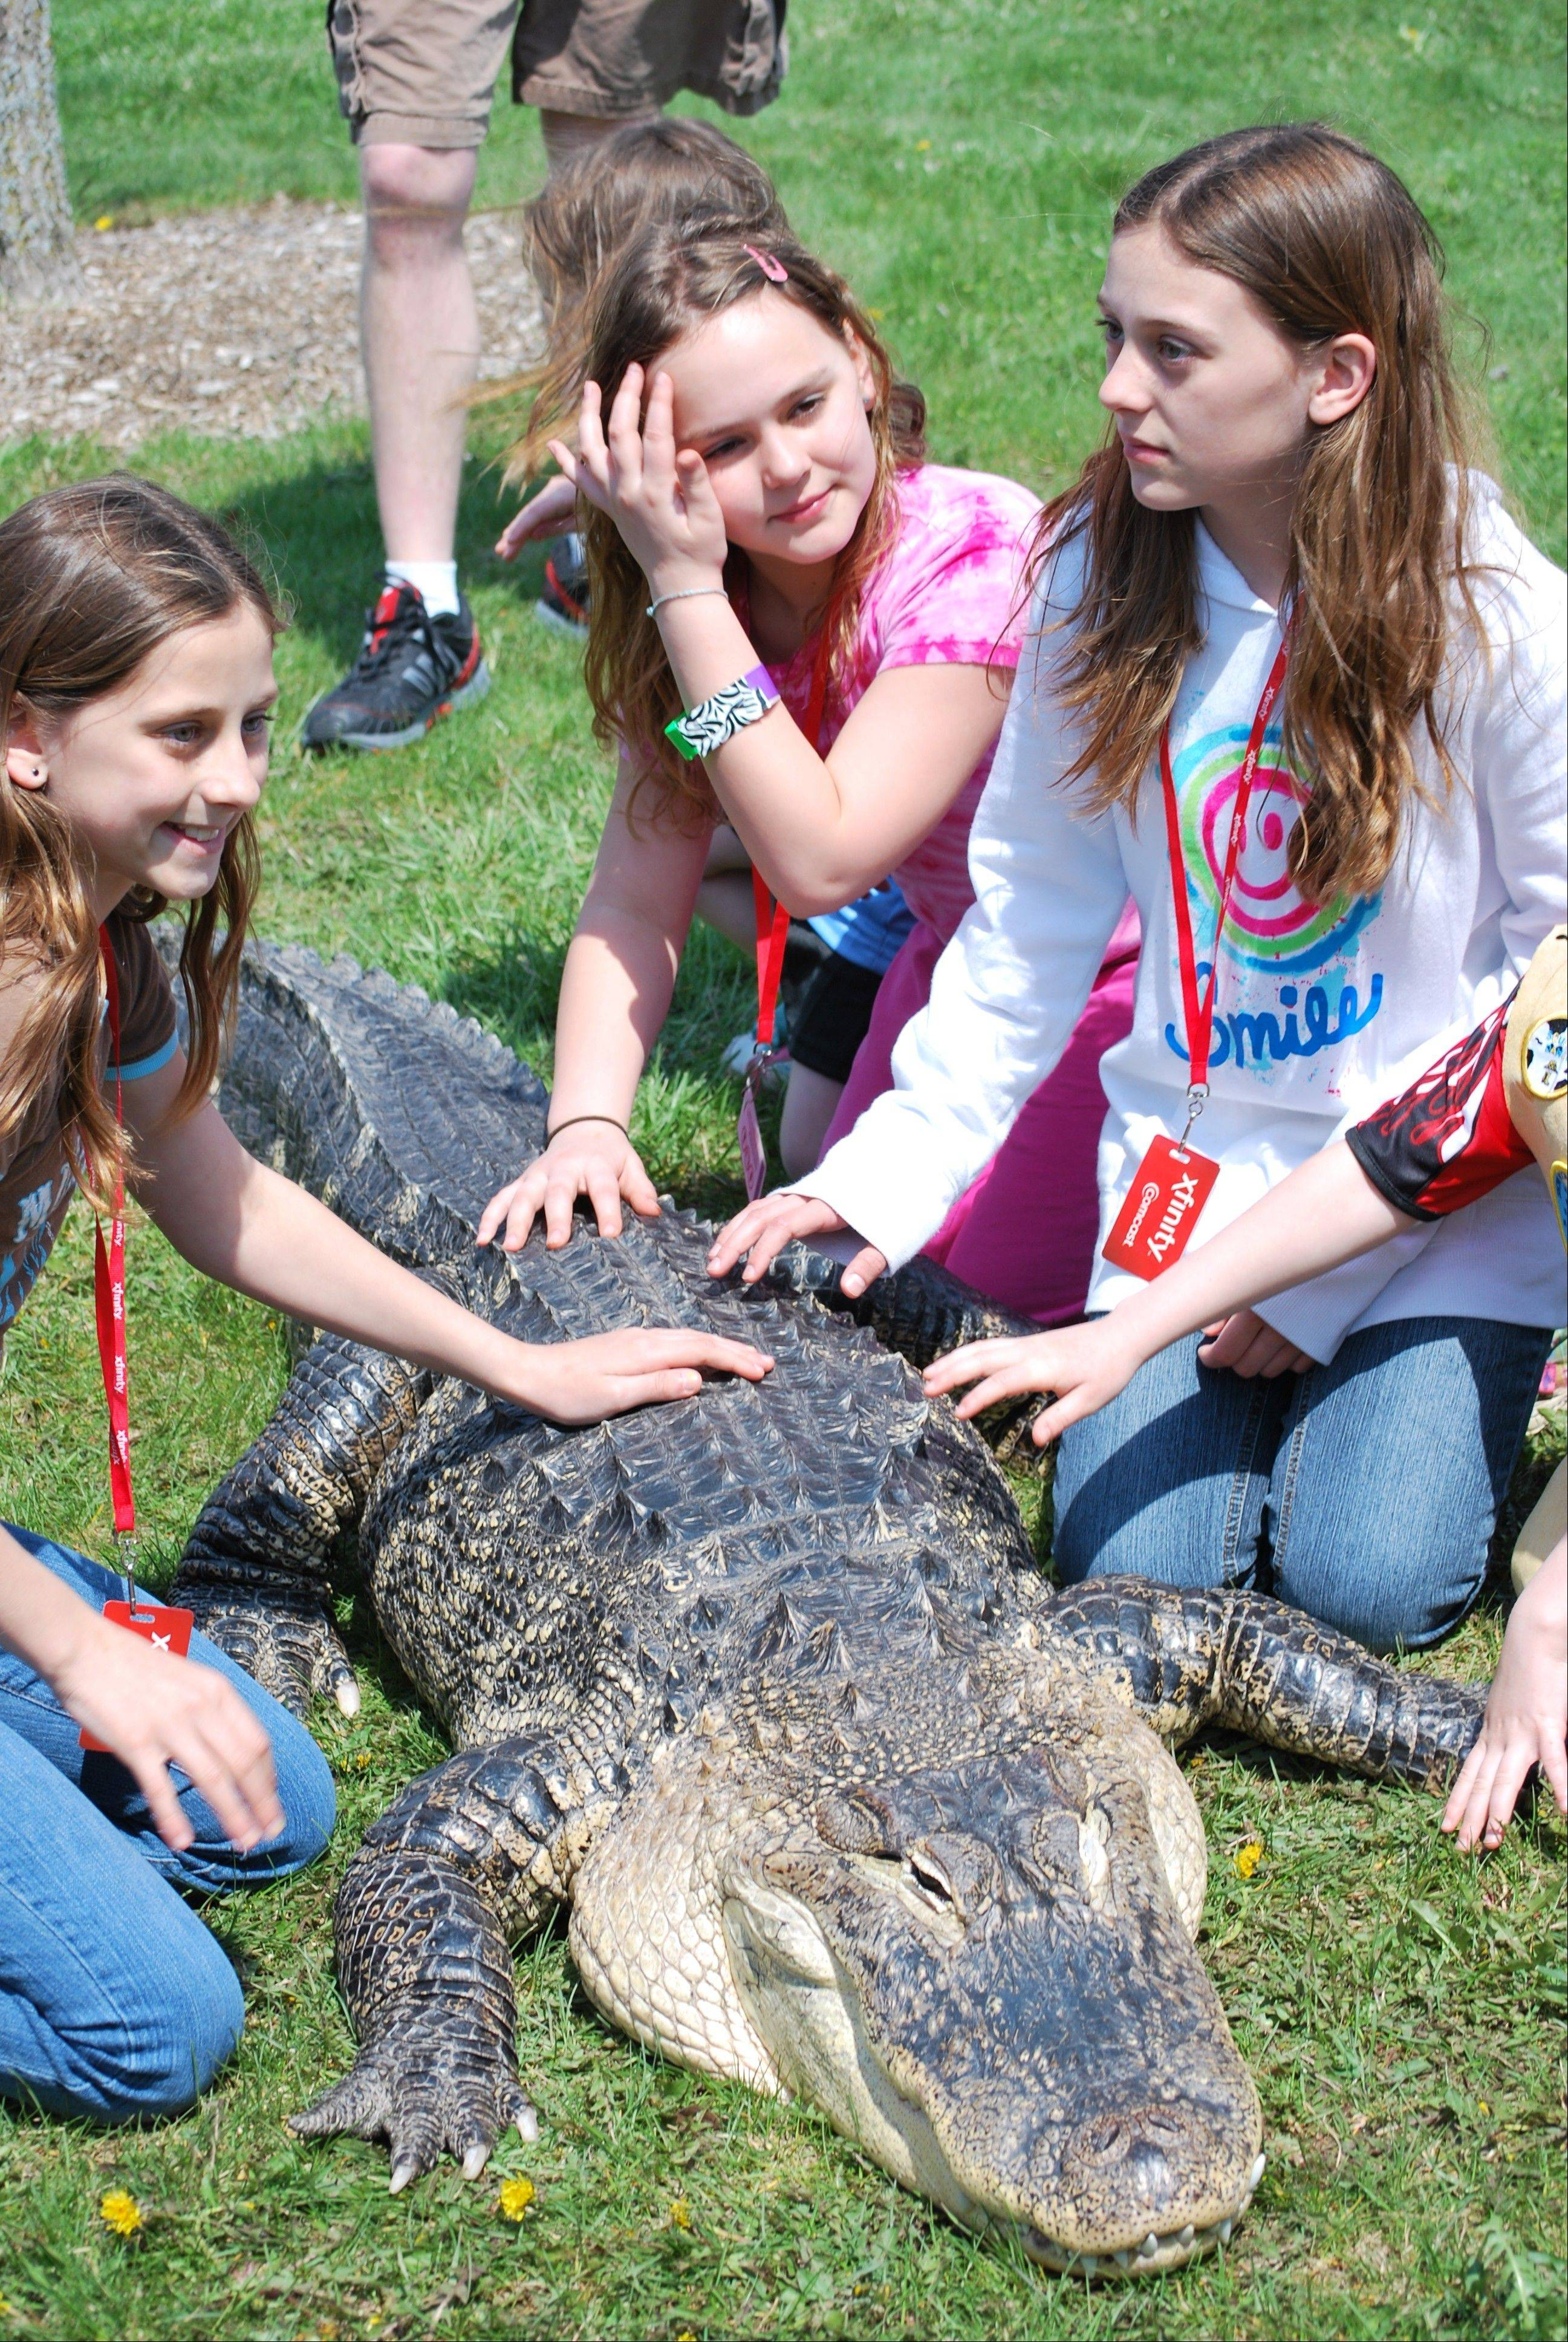 Nikki Greco, from left, Lindsey David and Kayla Greco get up close and personal with an alligator from Jim Nesci's Cold Blooded Creatures show.